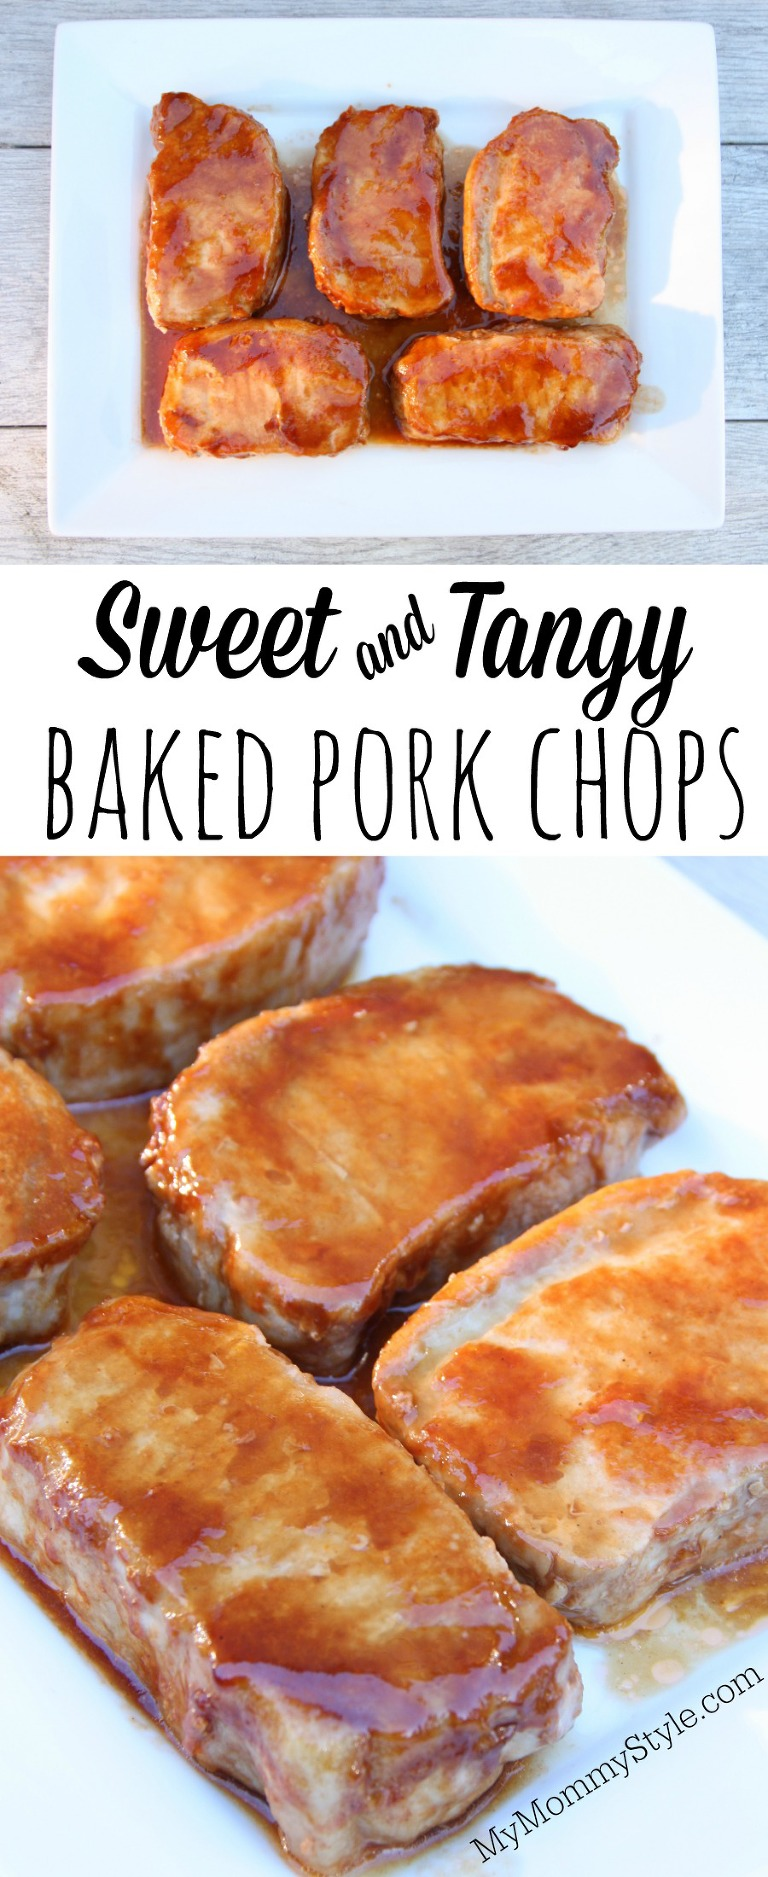 sweet-and-tangy-baked-pork-chops